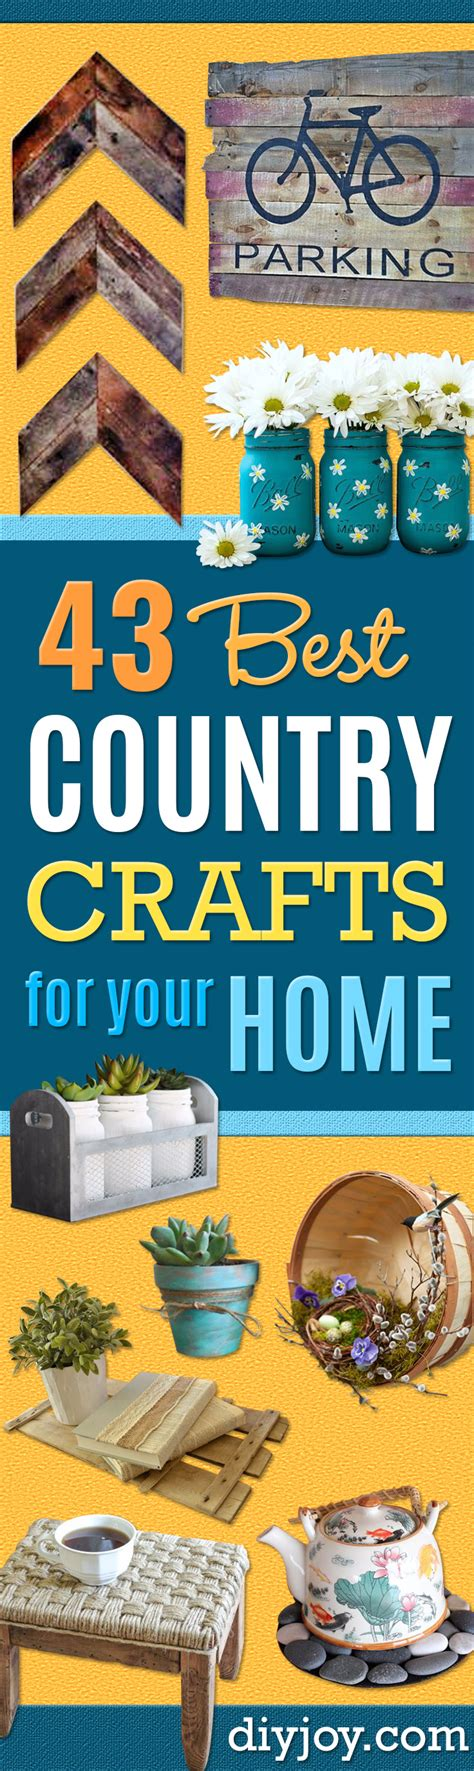 43 best images about home 43 best country crafts for your home